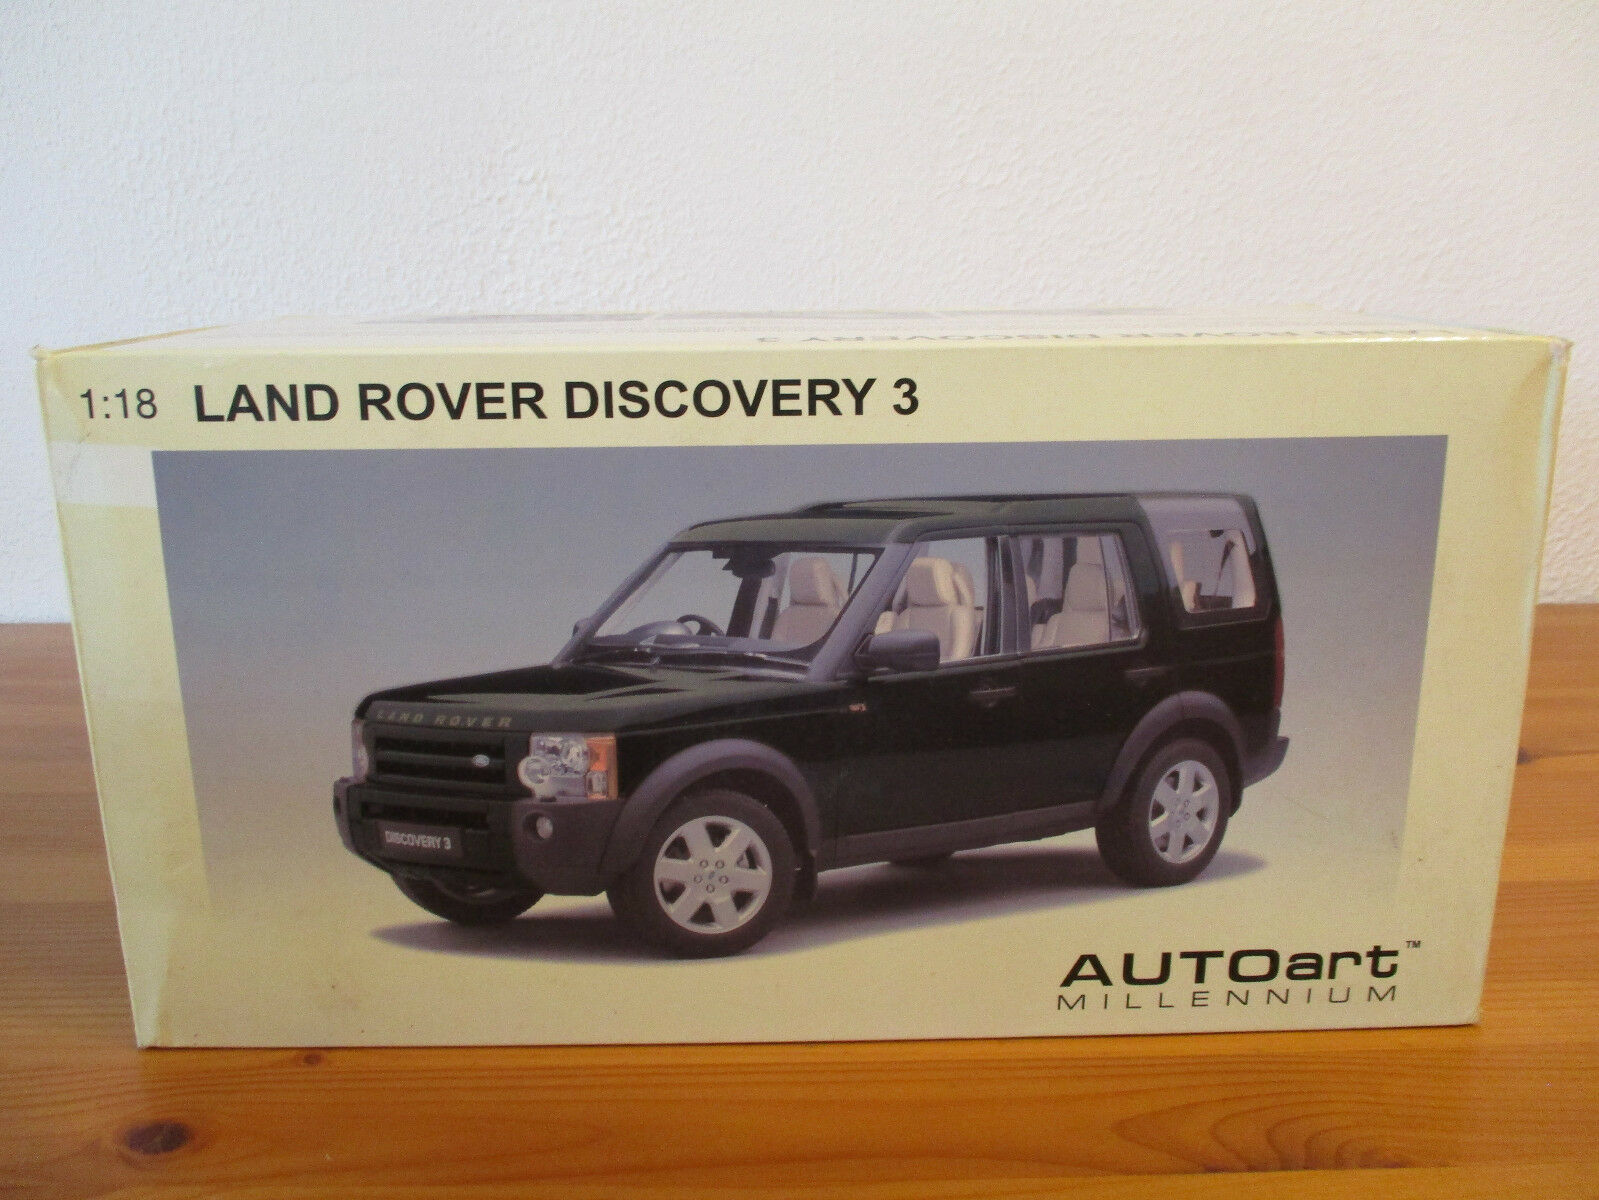 Gor   1:18 Autoart Land Rover Discovery 3 2005 Conf. Orig. 582f06